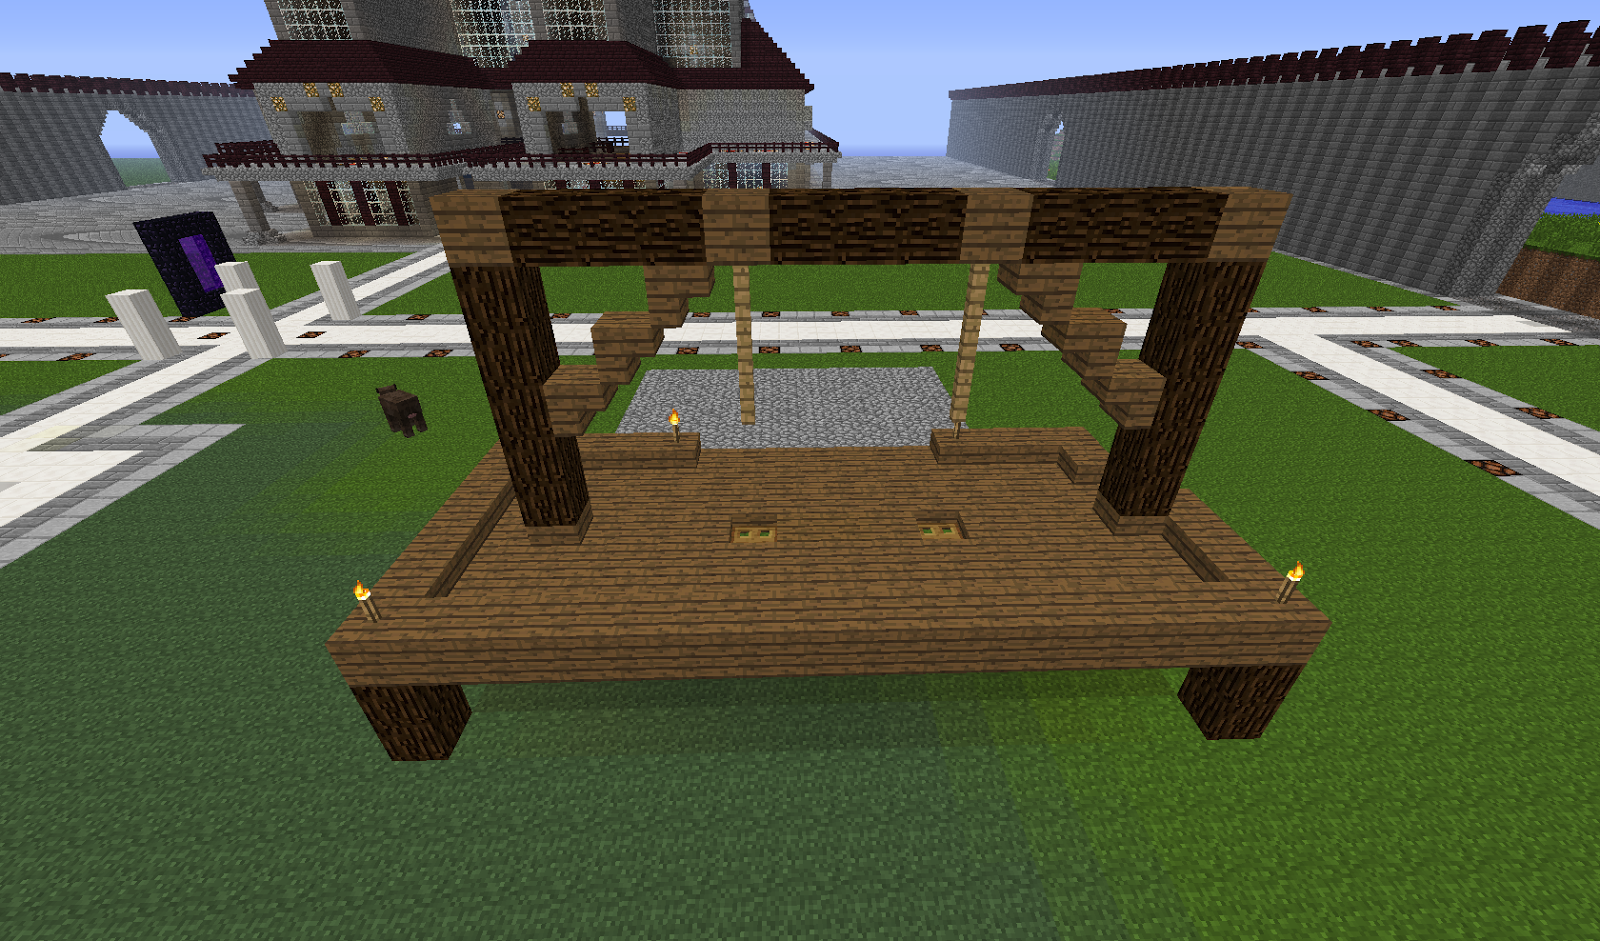 Minecraft building ideas gallows for House build ideas